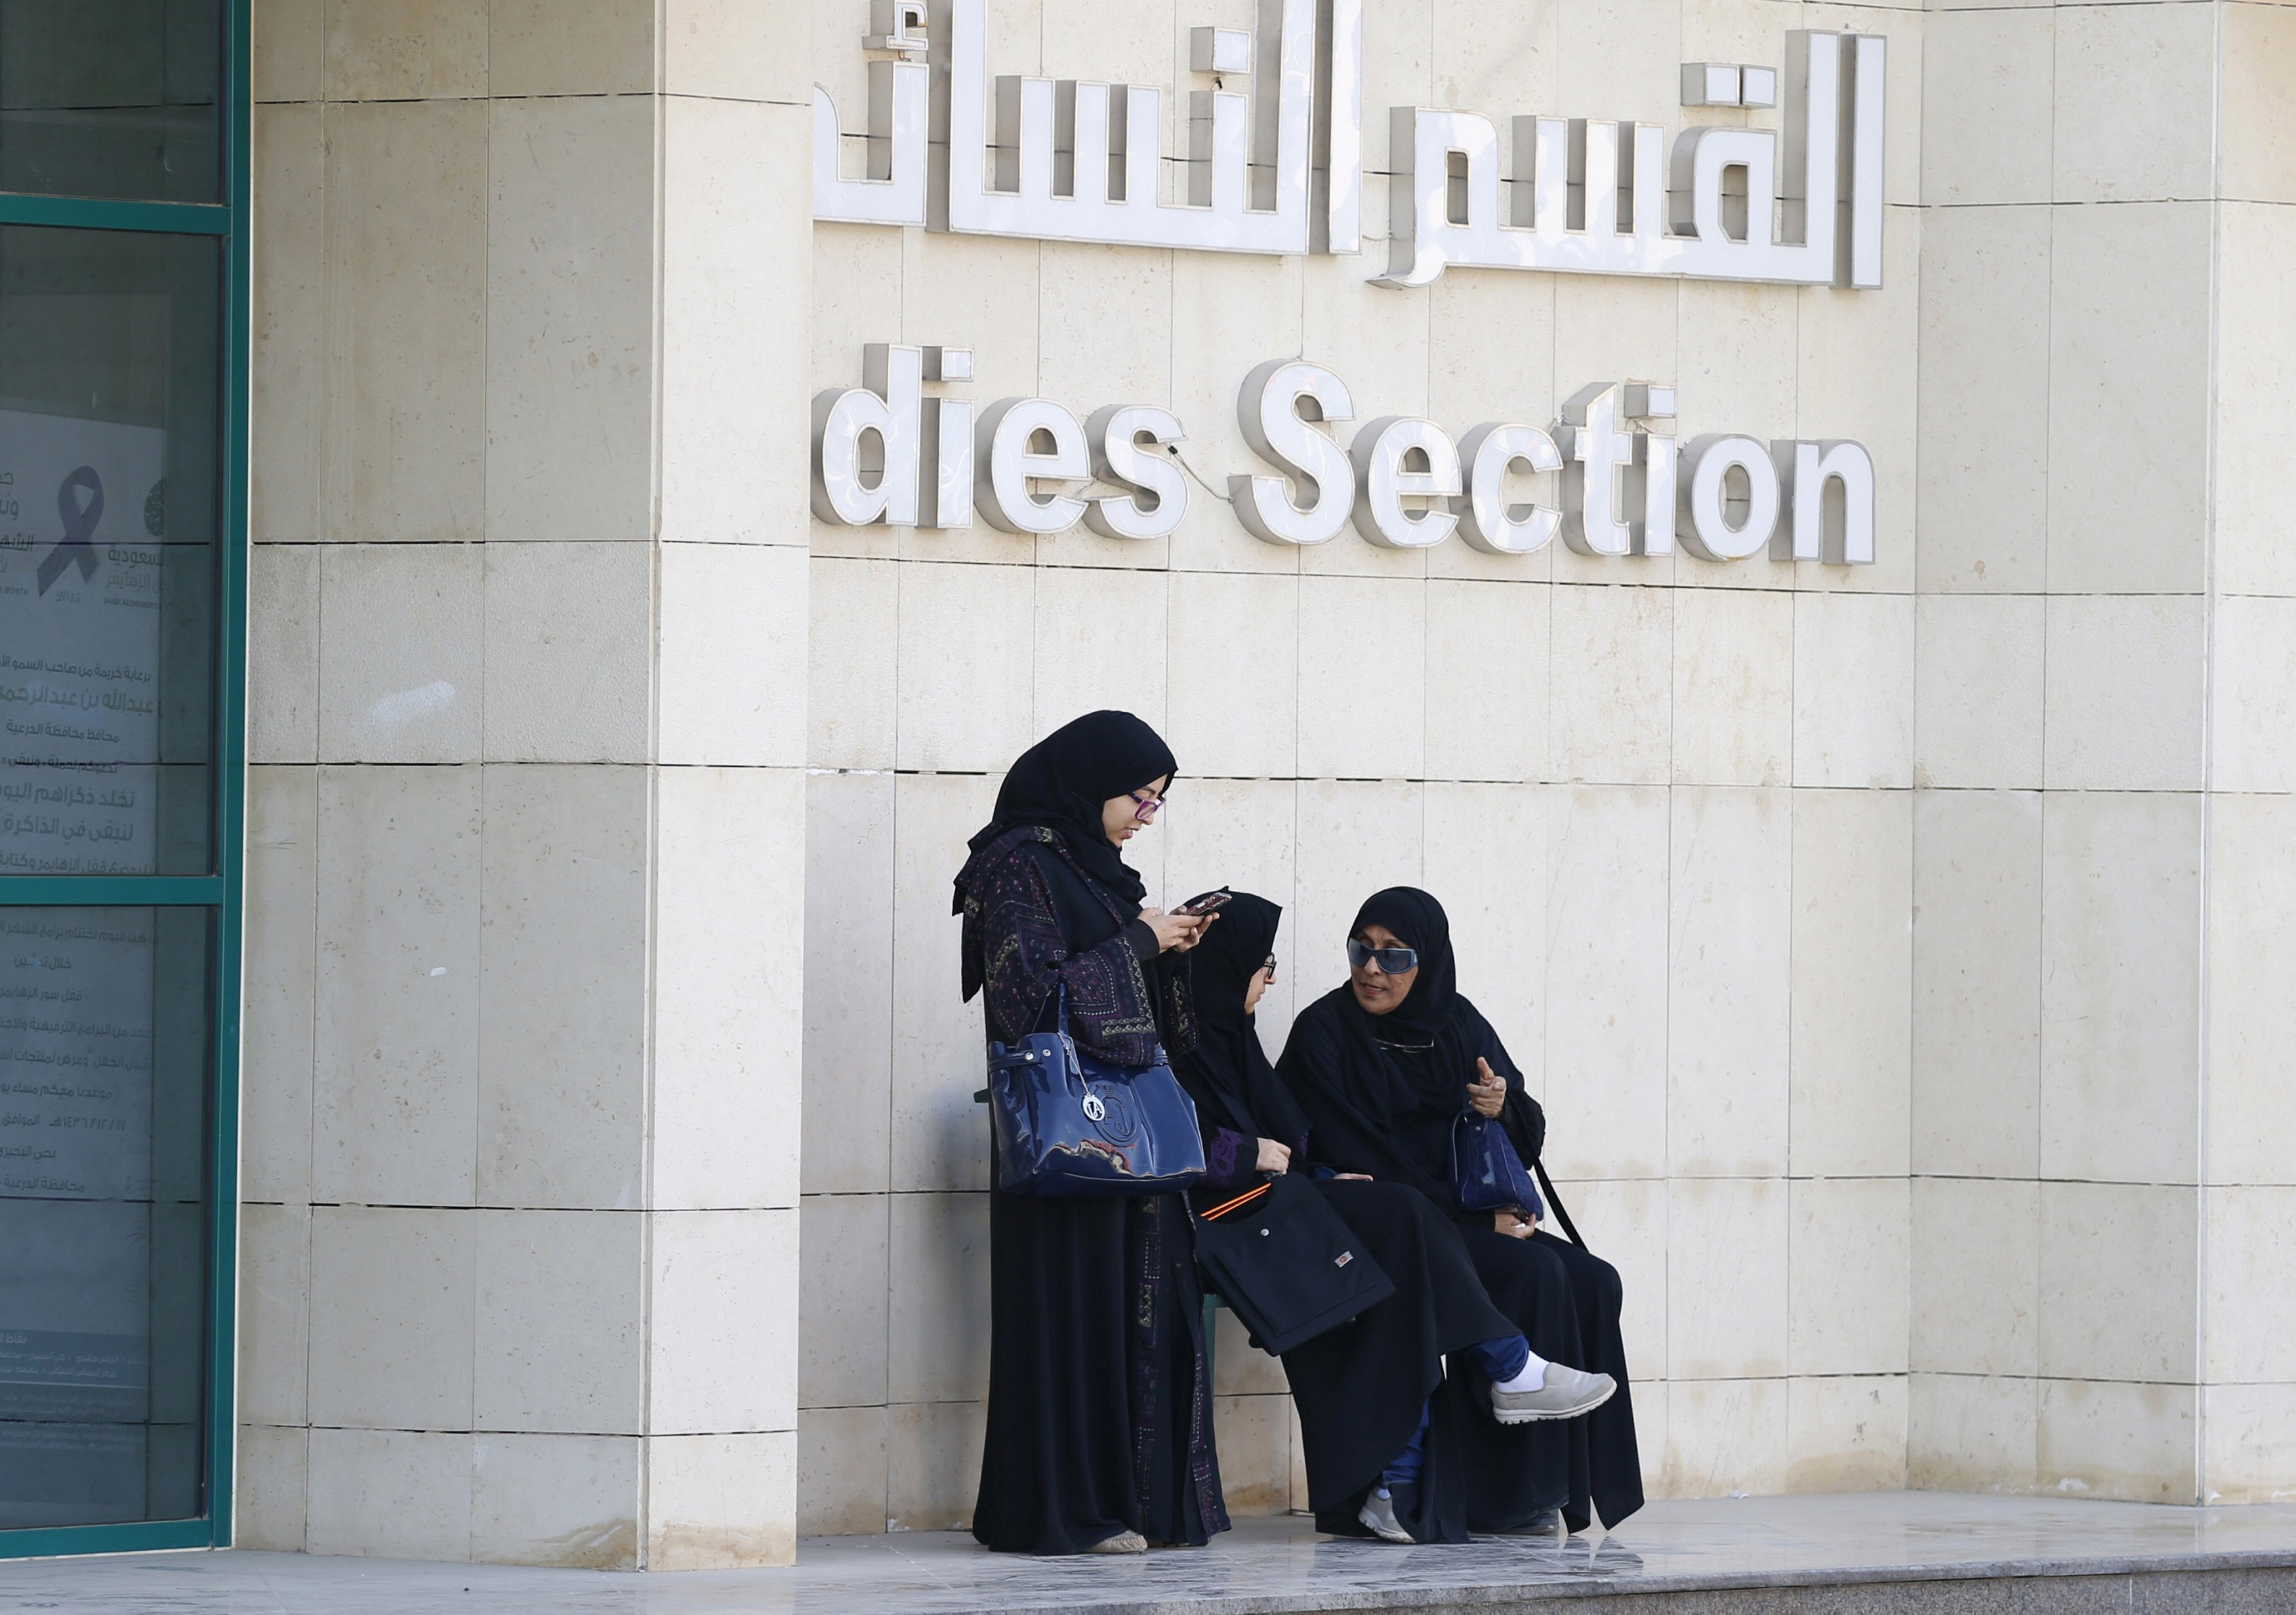 Women rest after casting their votes at a polling station during municipal elections, in Riyadh, Saudi Arabia December 12, 2015. Photo: Reuters